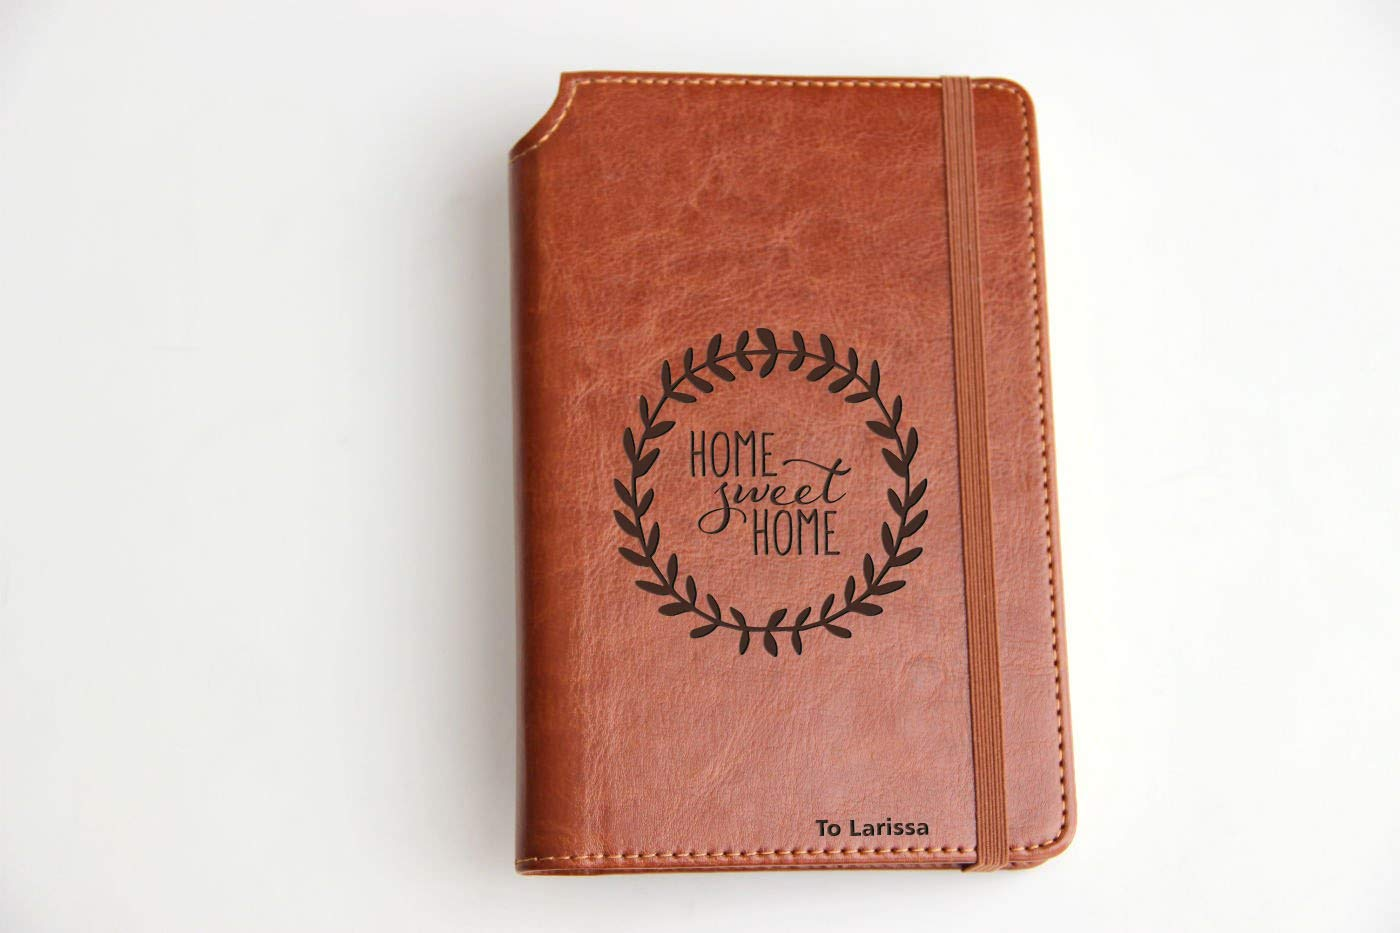 Customizable laser engraved Home Sweet Home Journal Customizable engraved Journal leather bound, strip with the same color to keep it closed